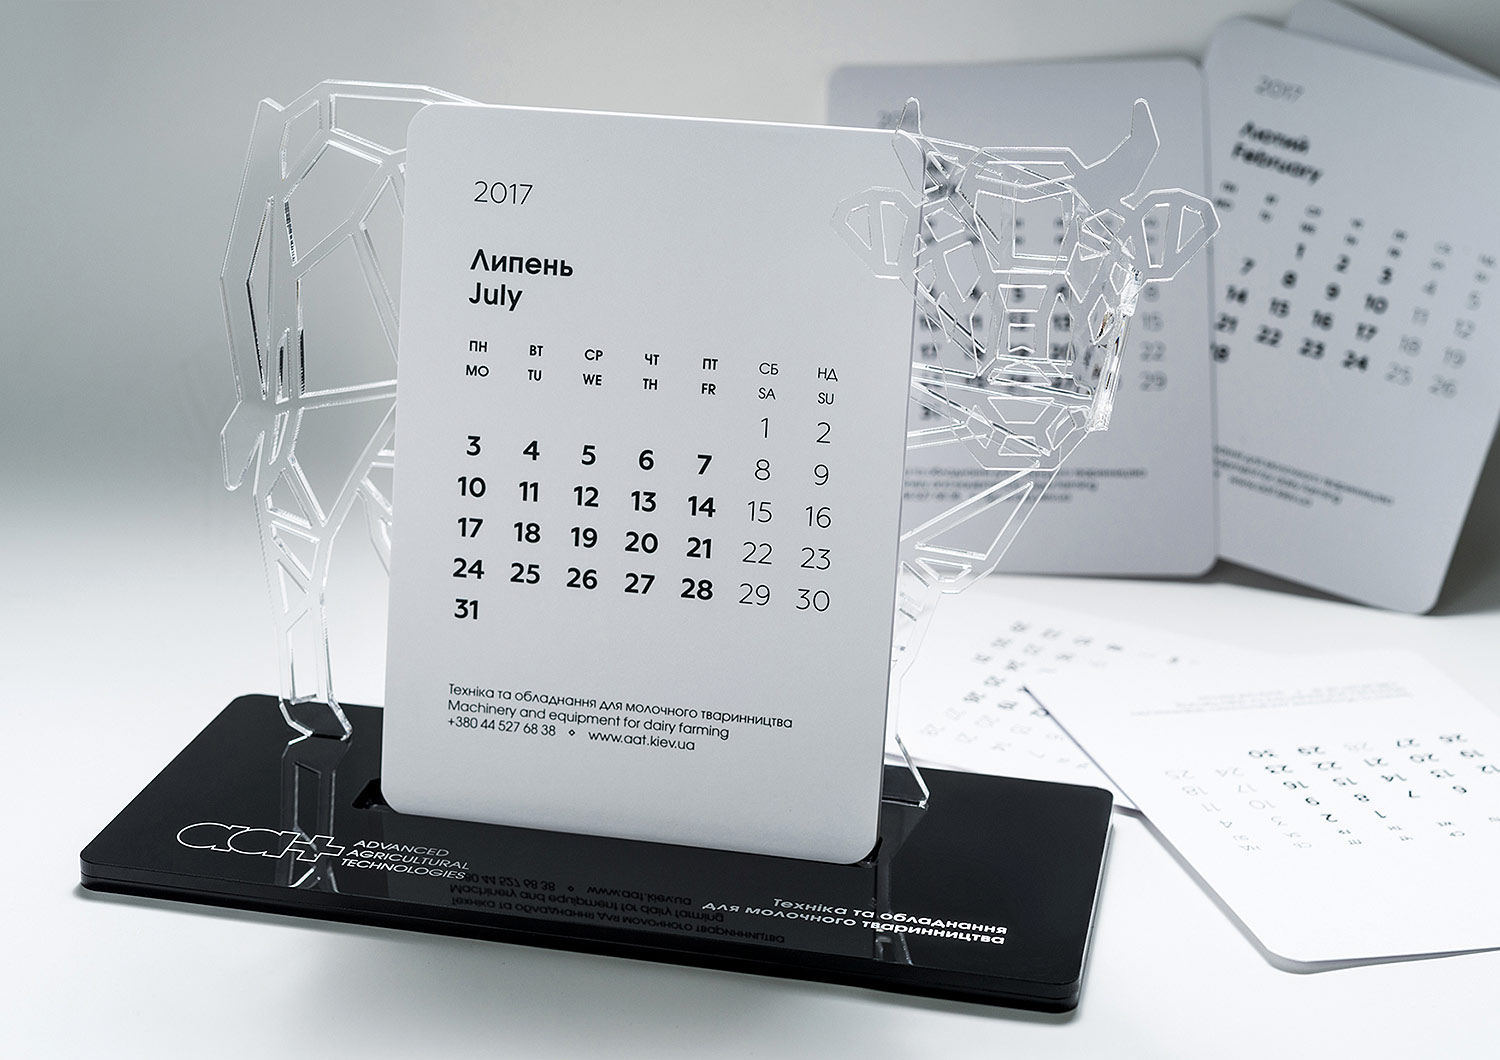 Creative calendar with replaceable sheets. An eternal calendar that can be used for many years. Stylish calendar grid printed on designer cardboard.